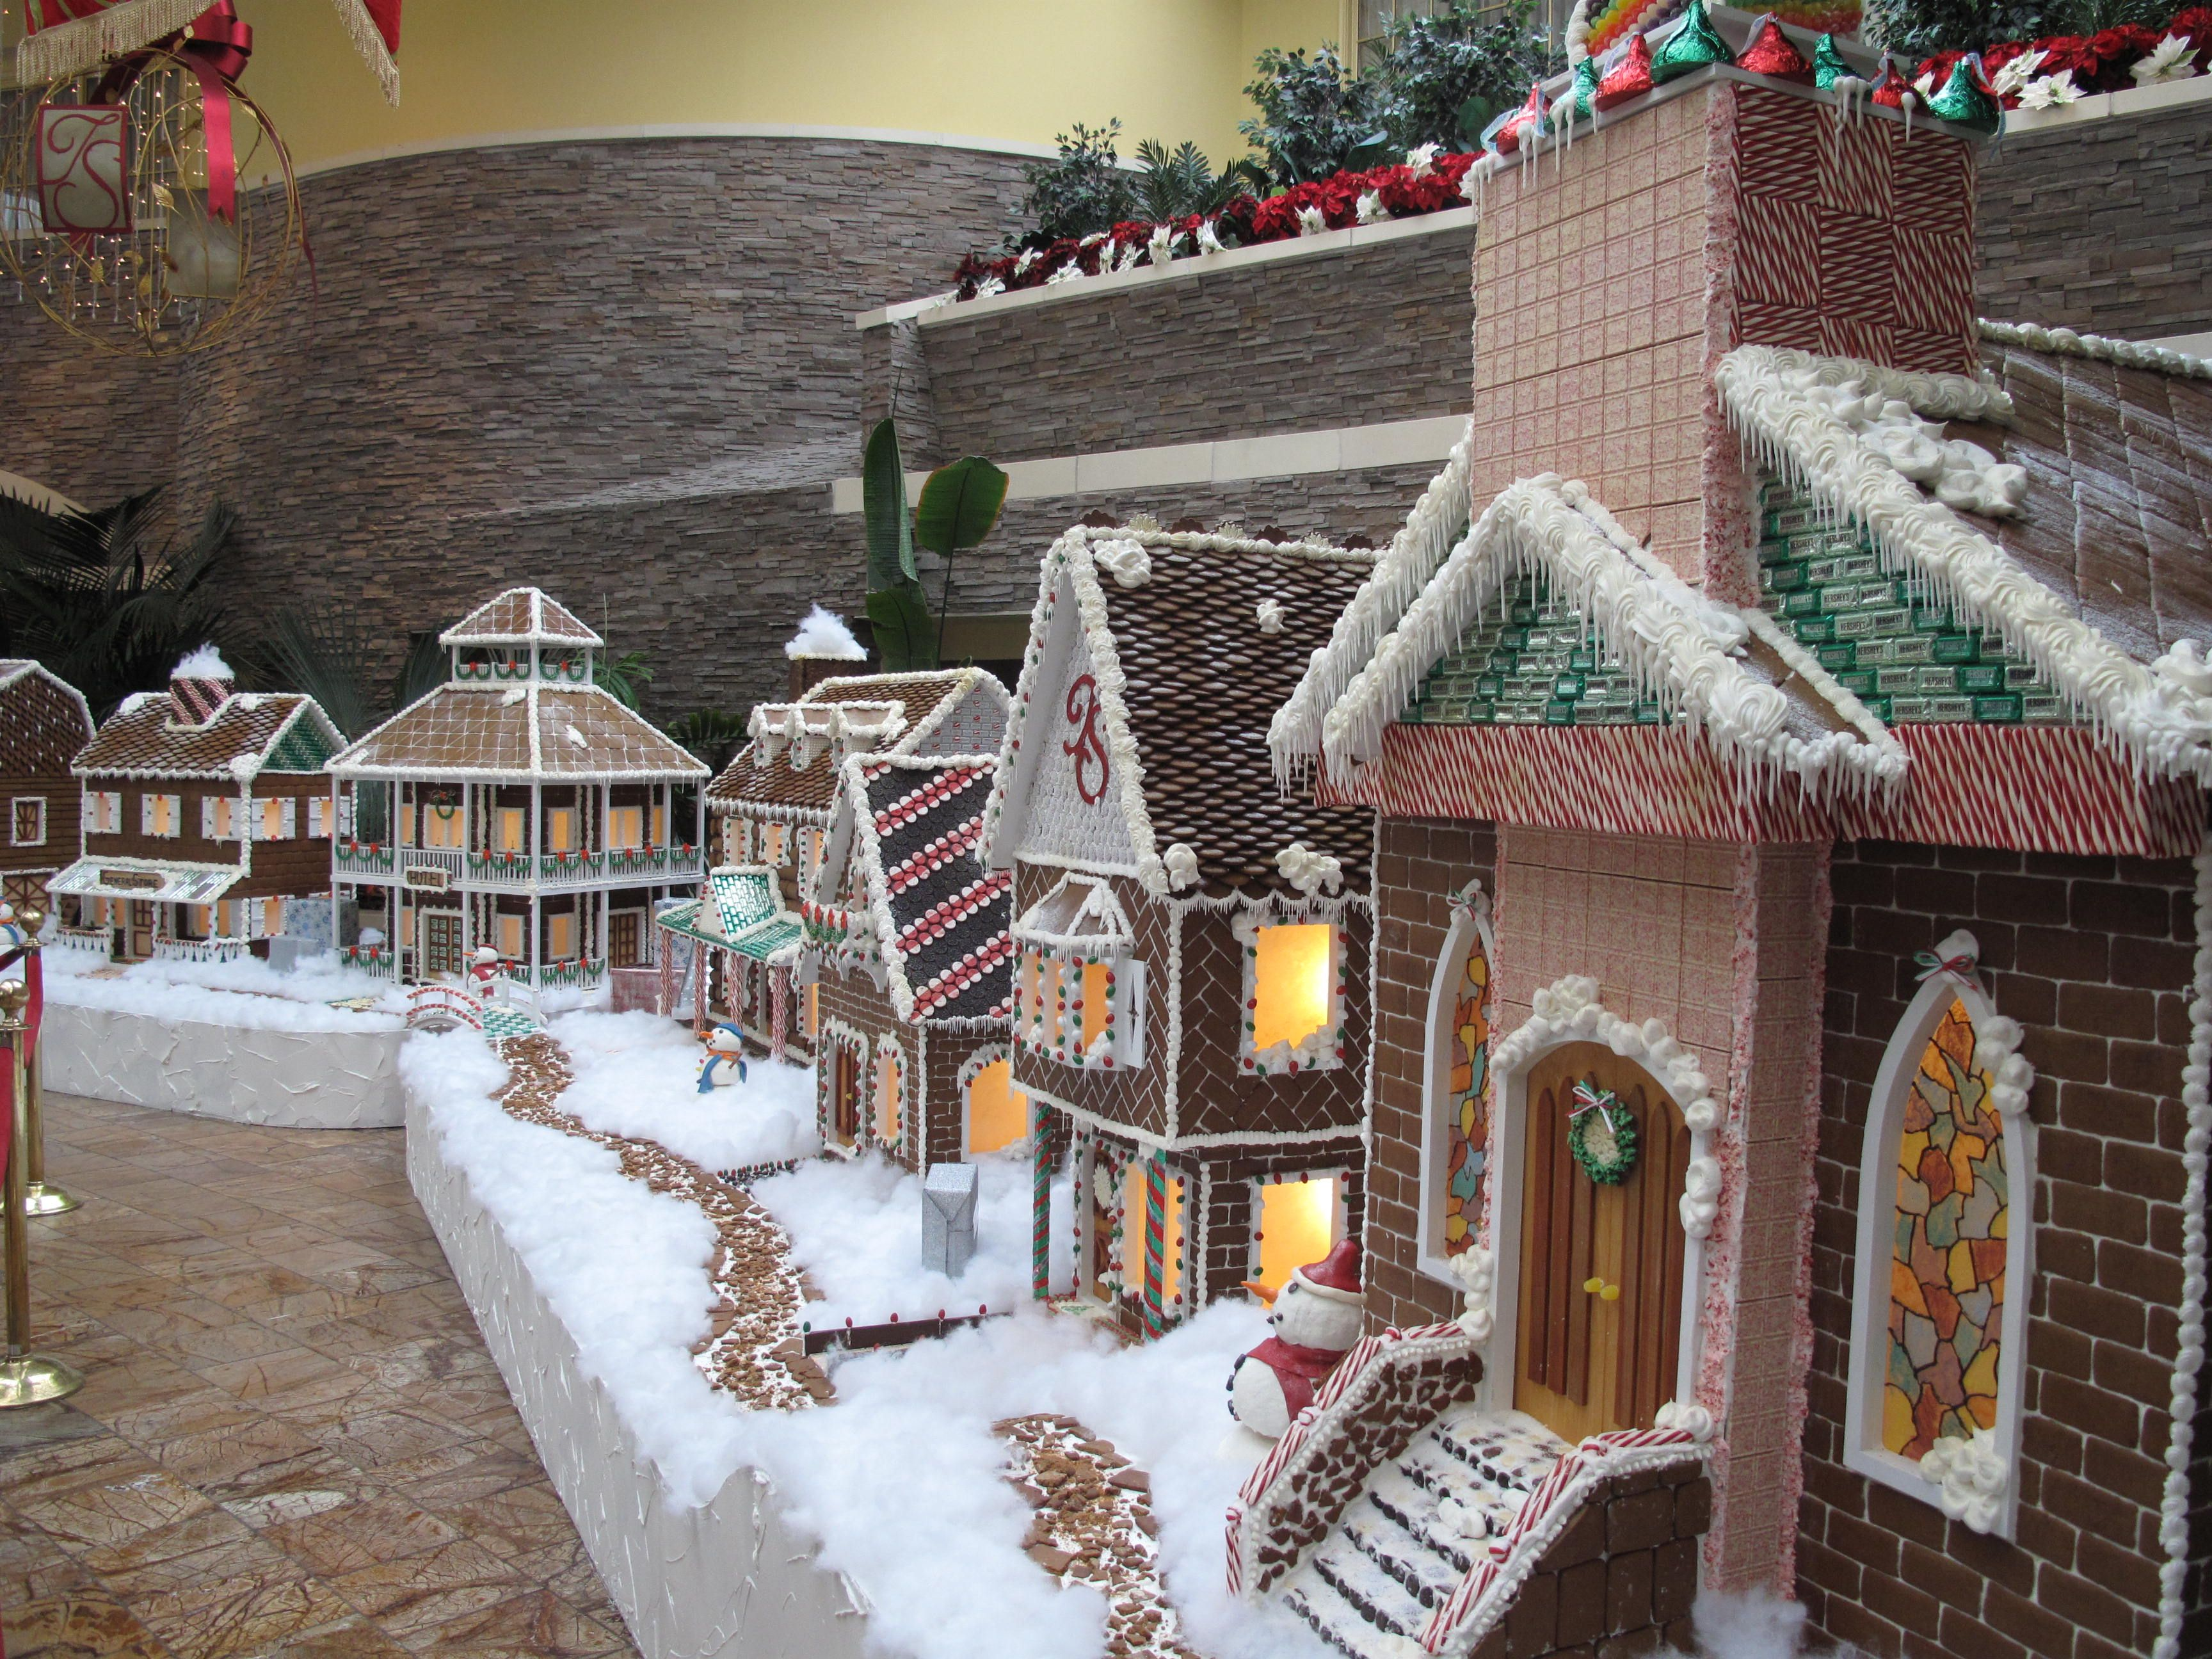 The record-breaking 'sugary' gingerbread village